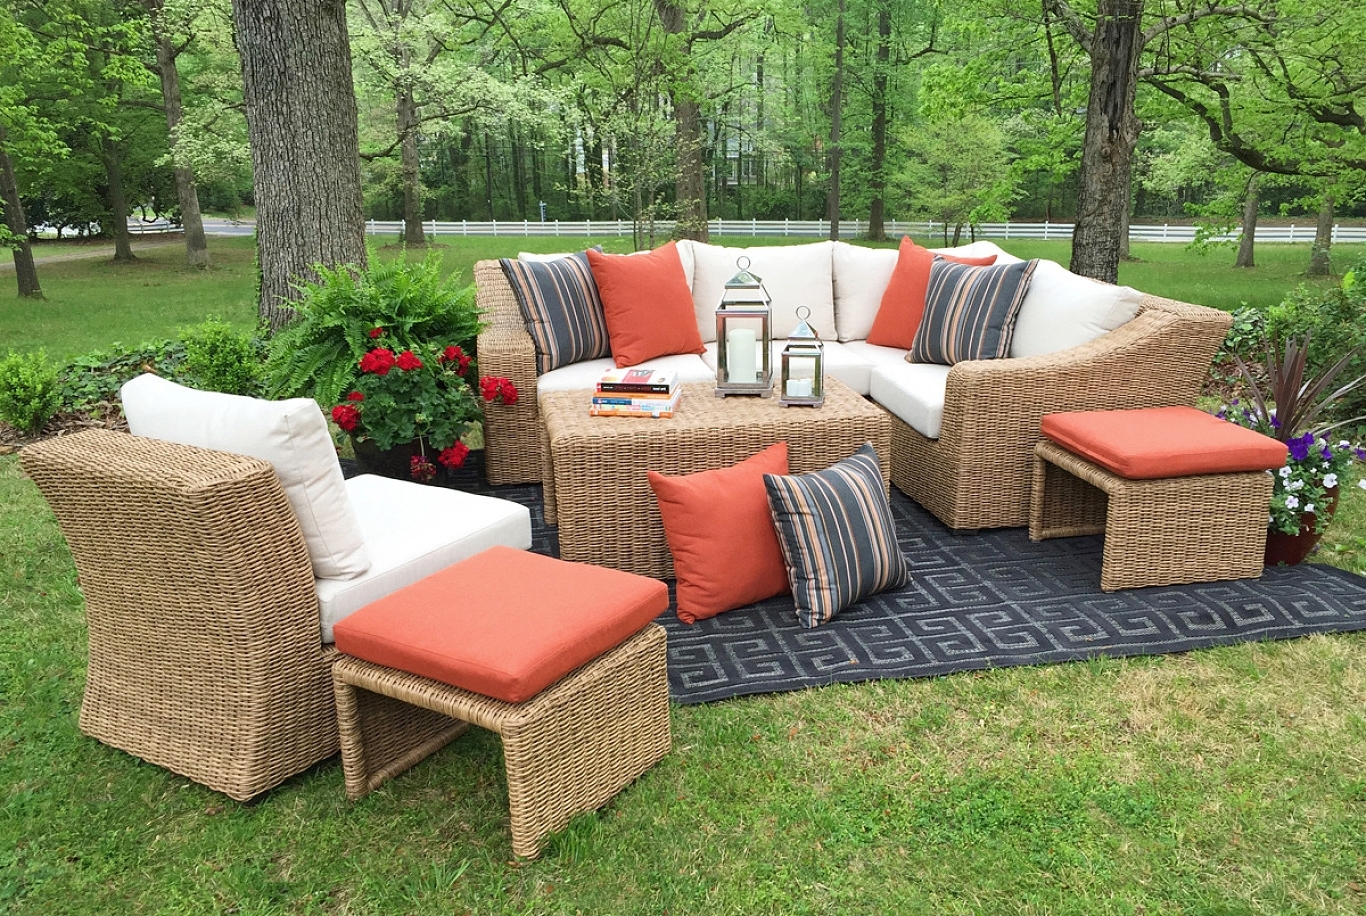 Widely Used Macys Outdoor Chaise Lounge Chairs Regarding Sunbrella Patio Furniture Covers Sunbrella Chaise Lounge Sunbrella (View 10 of 15)